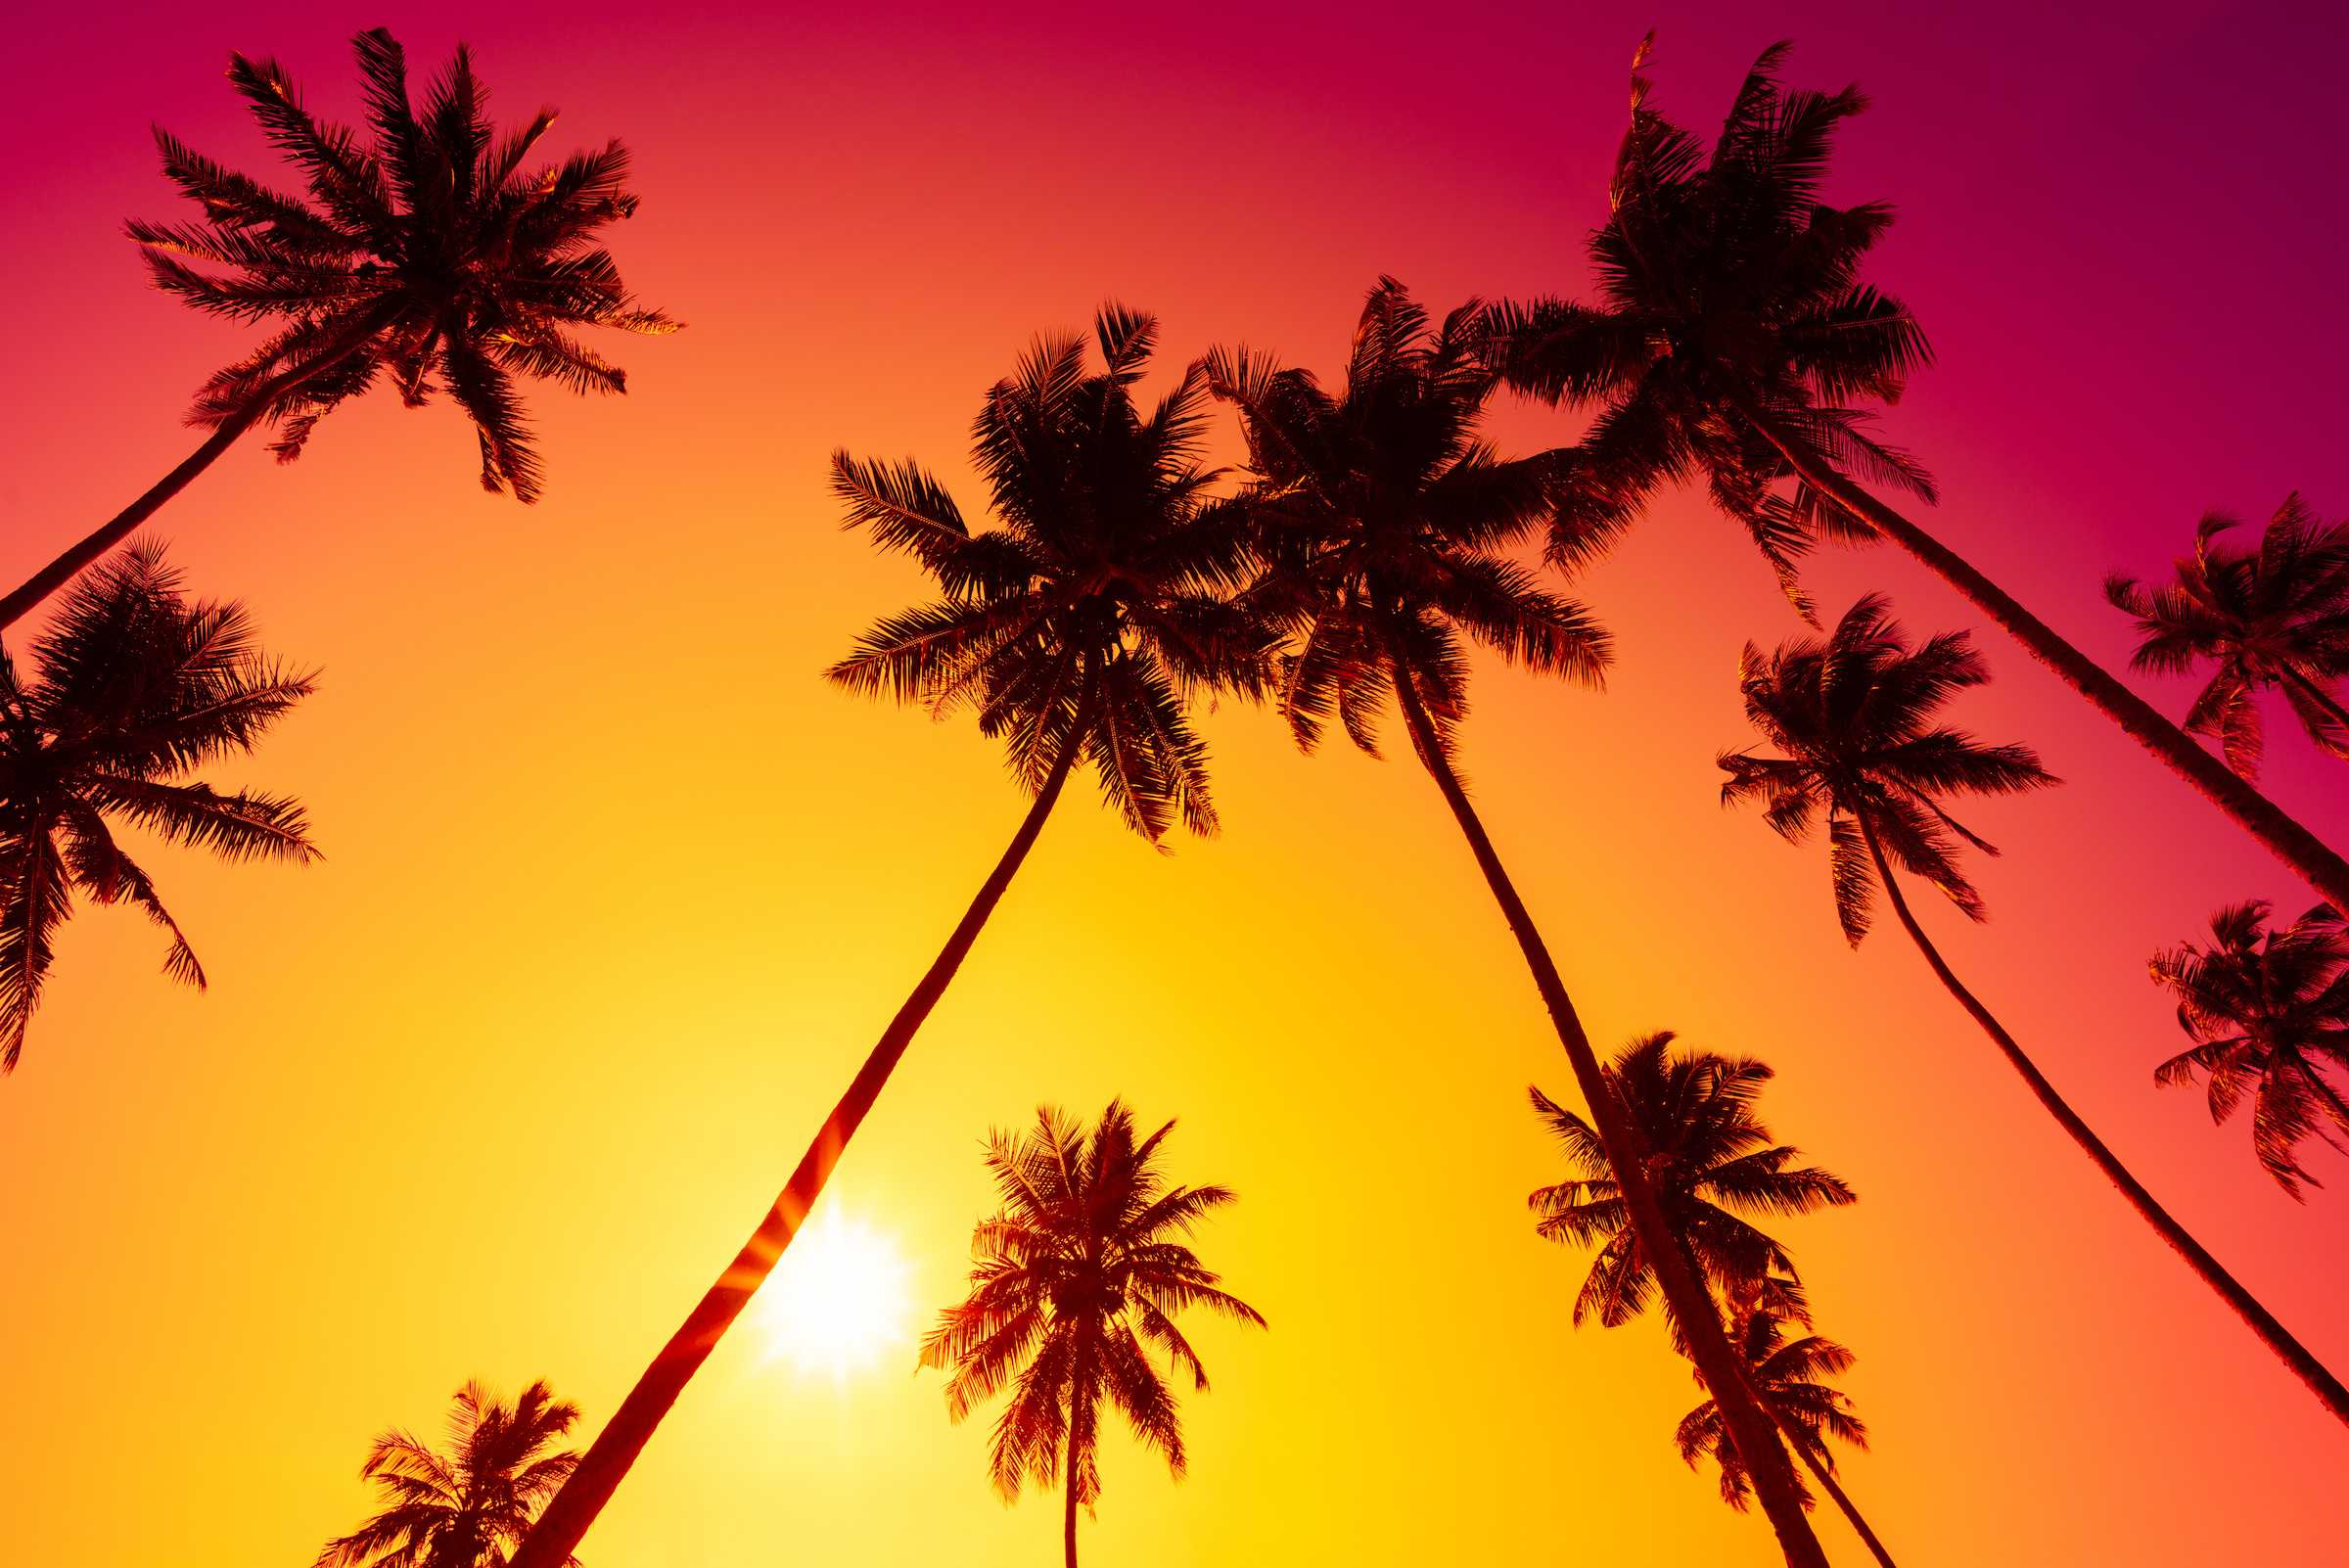 Vibrant Sunset with Palm Trees